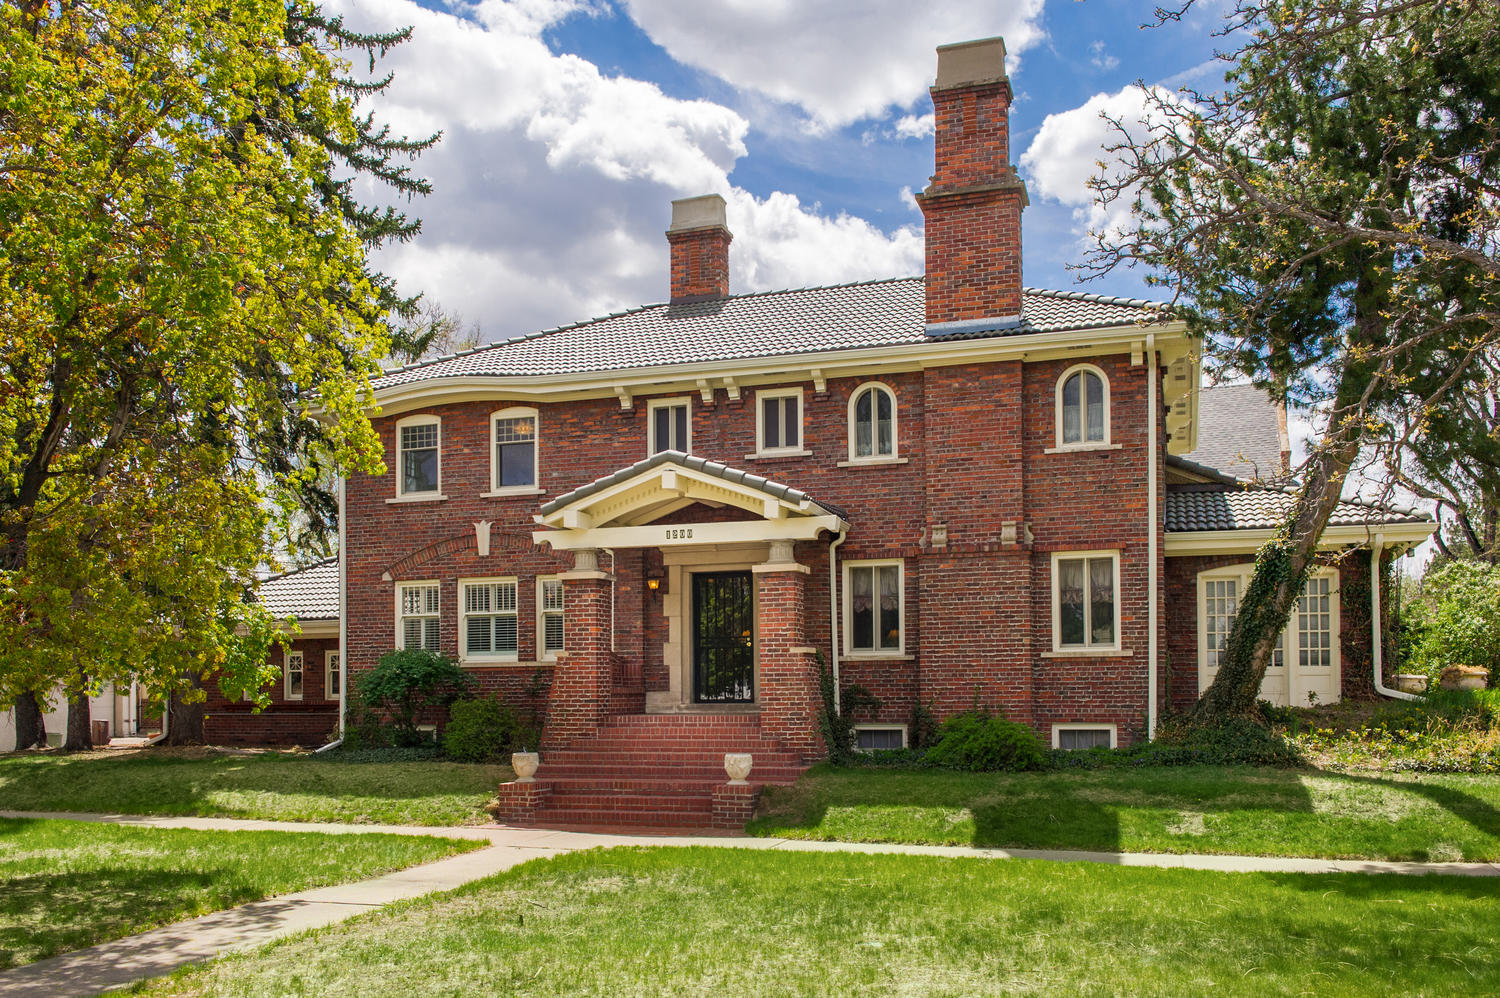 Single Family Home for Active at Stately Country Club Home 1200 East 3rd Avenue Denver, Colorado 80218 United States